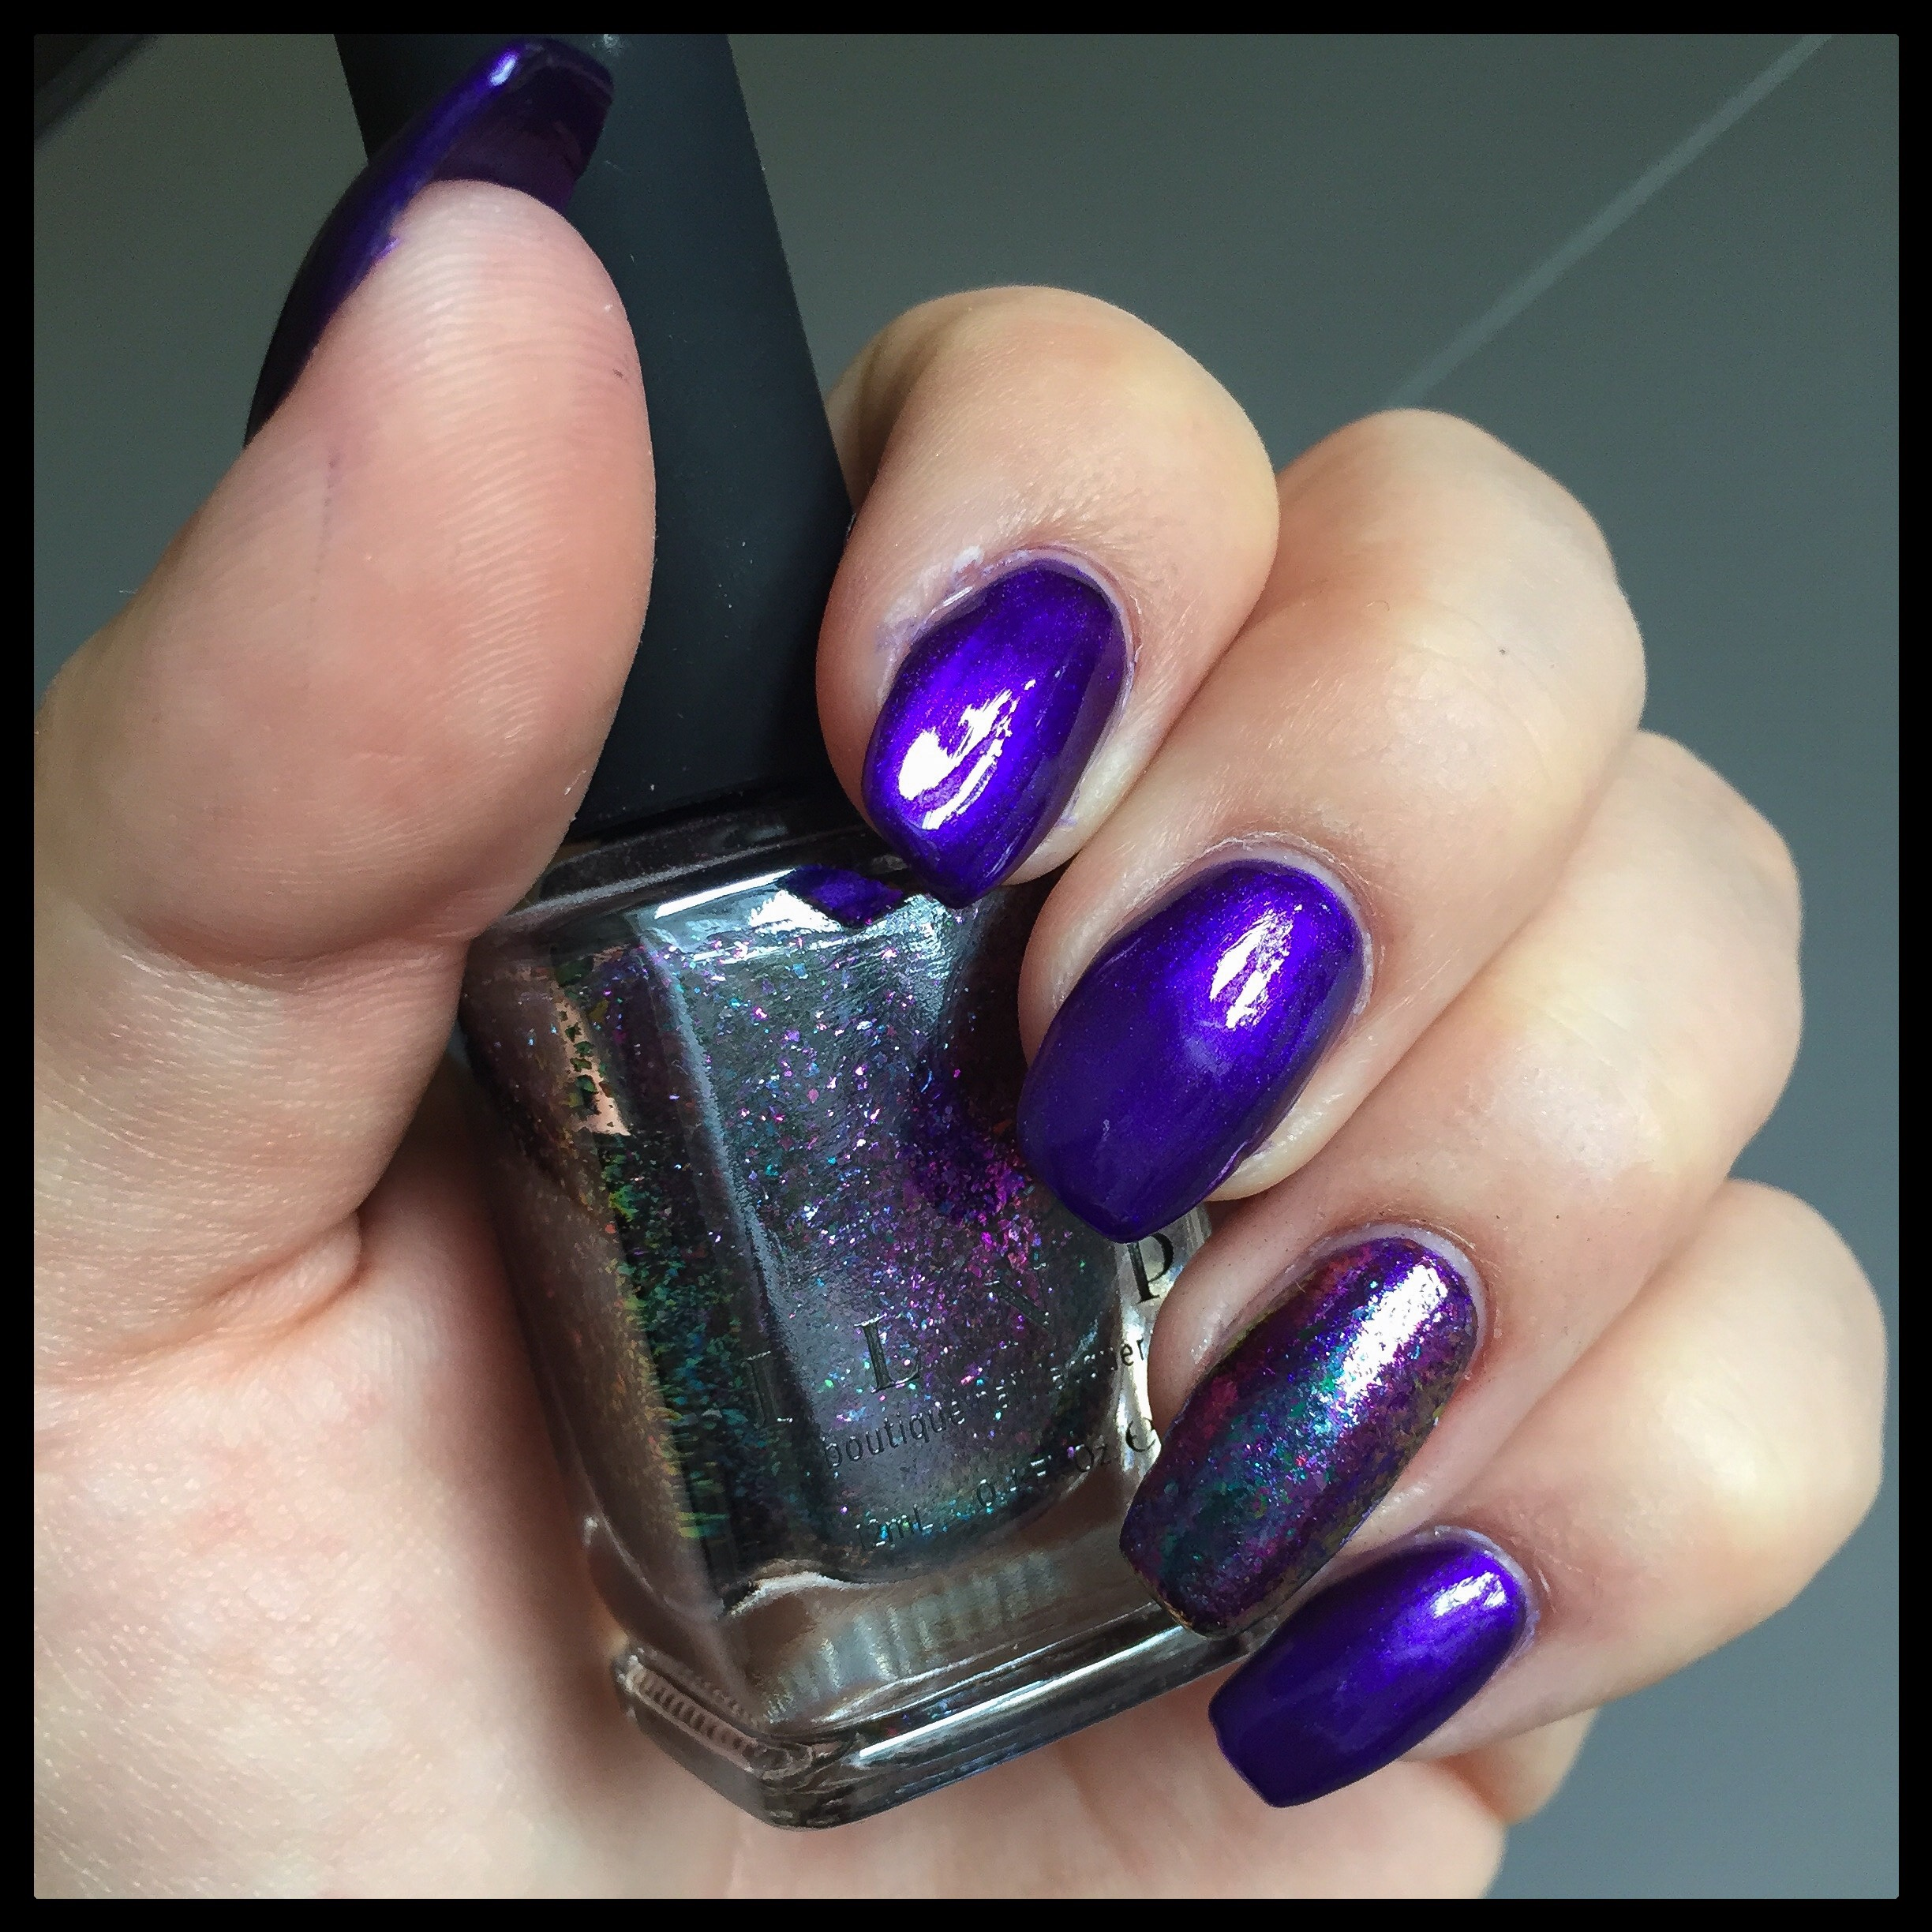 Depend 420 & ILNP luna by Beauty by Orneklyft